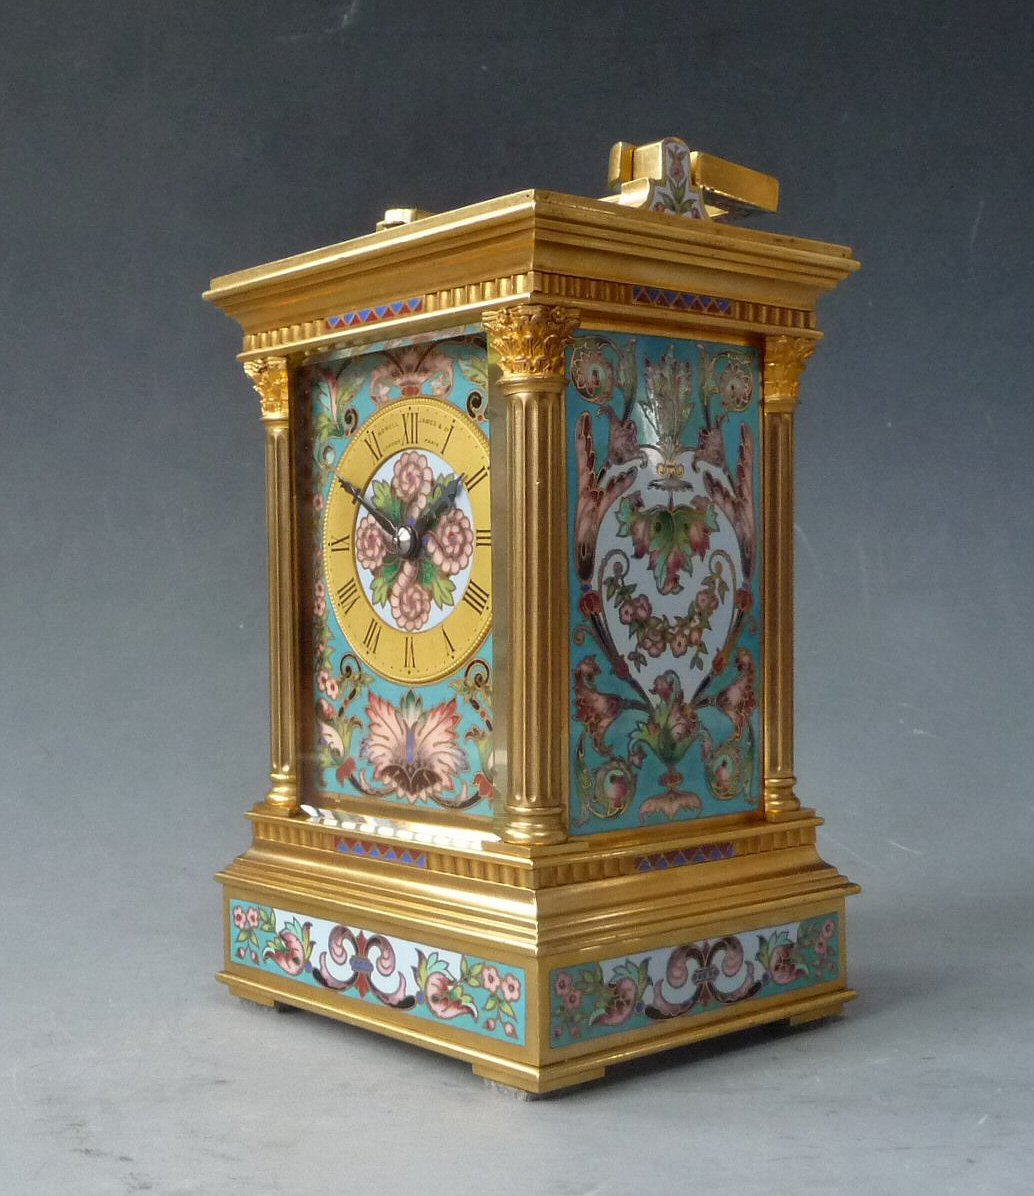 carriage clock case anglaise by richard cloisonn. Black Bedroom Furniture Sets. Home Design Ideas